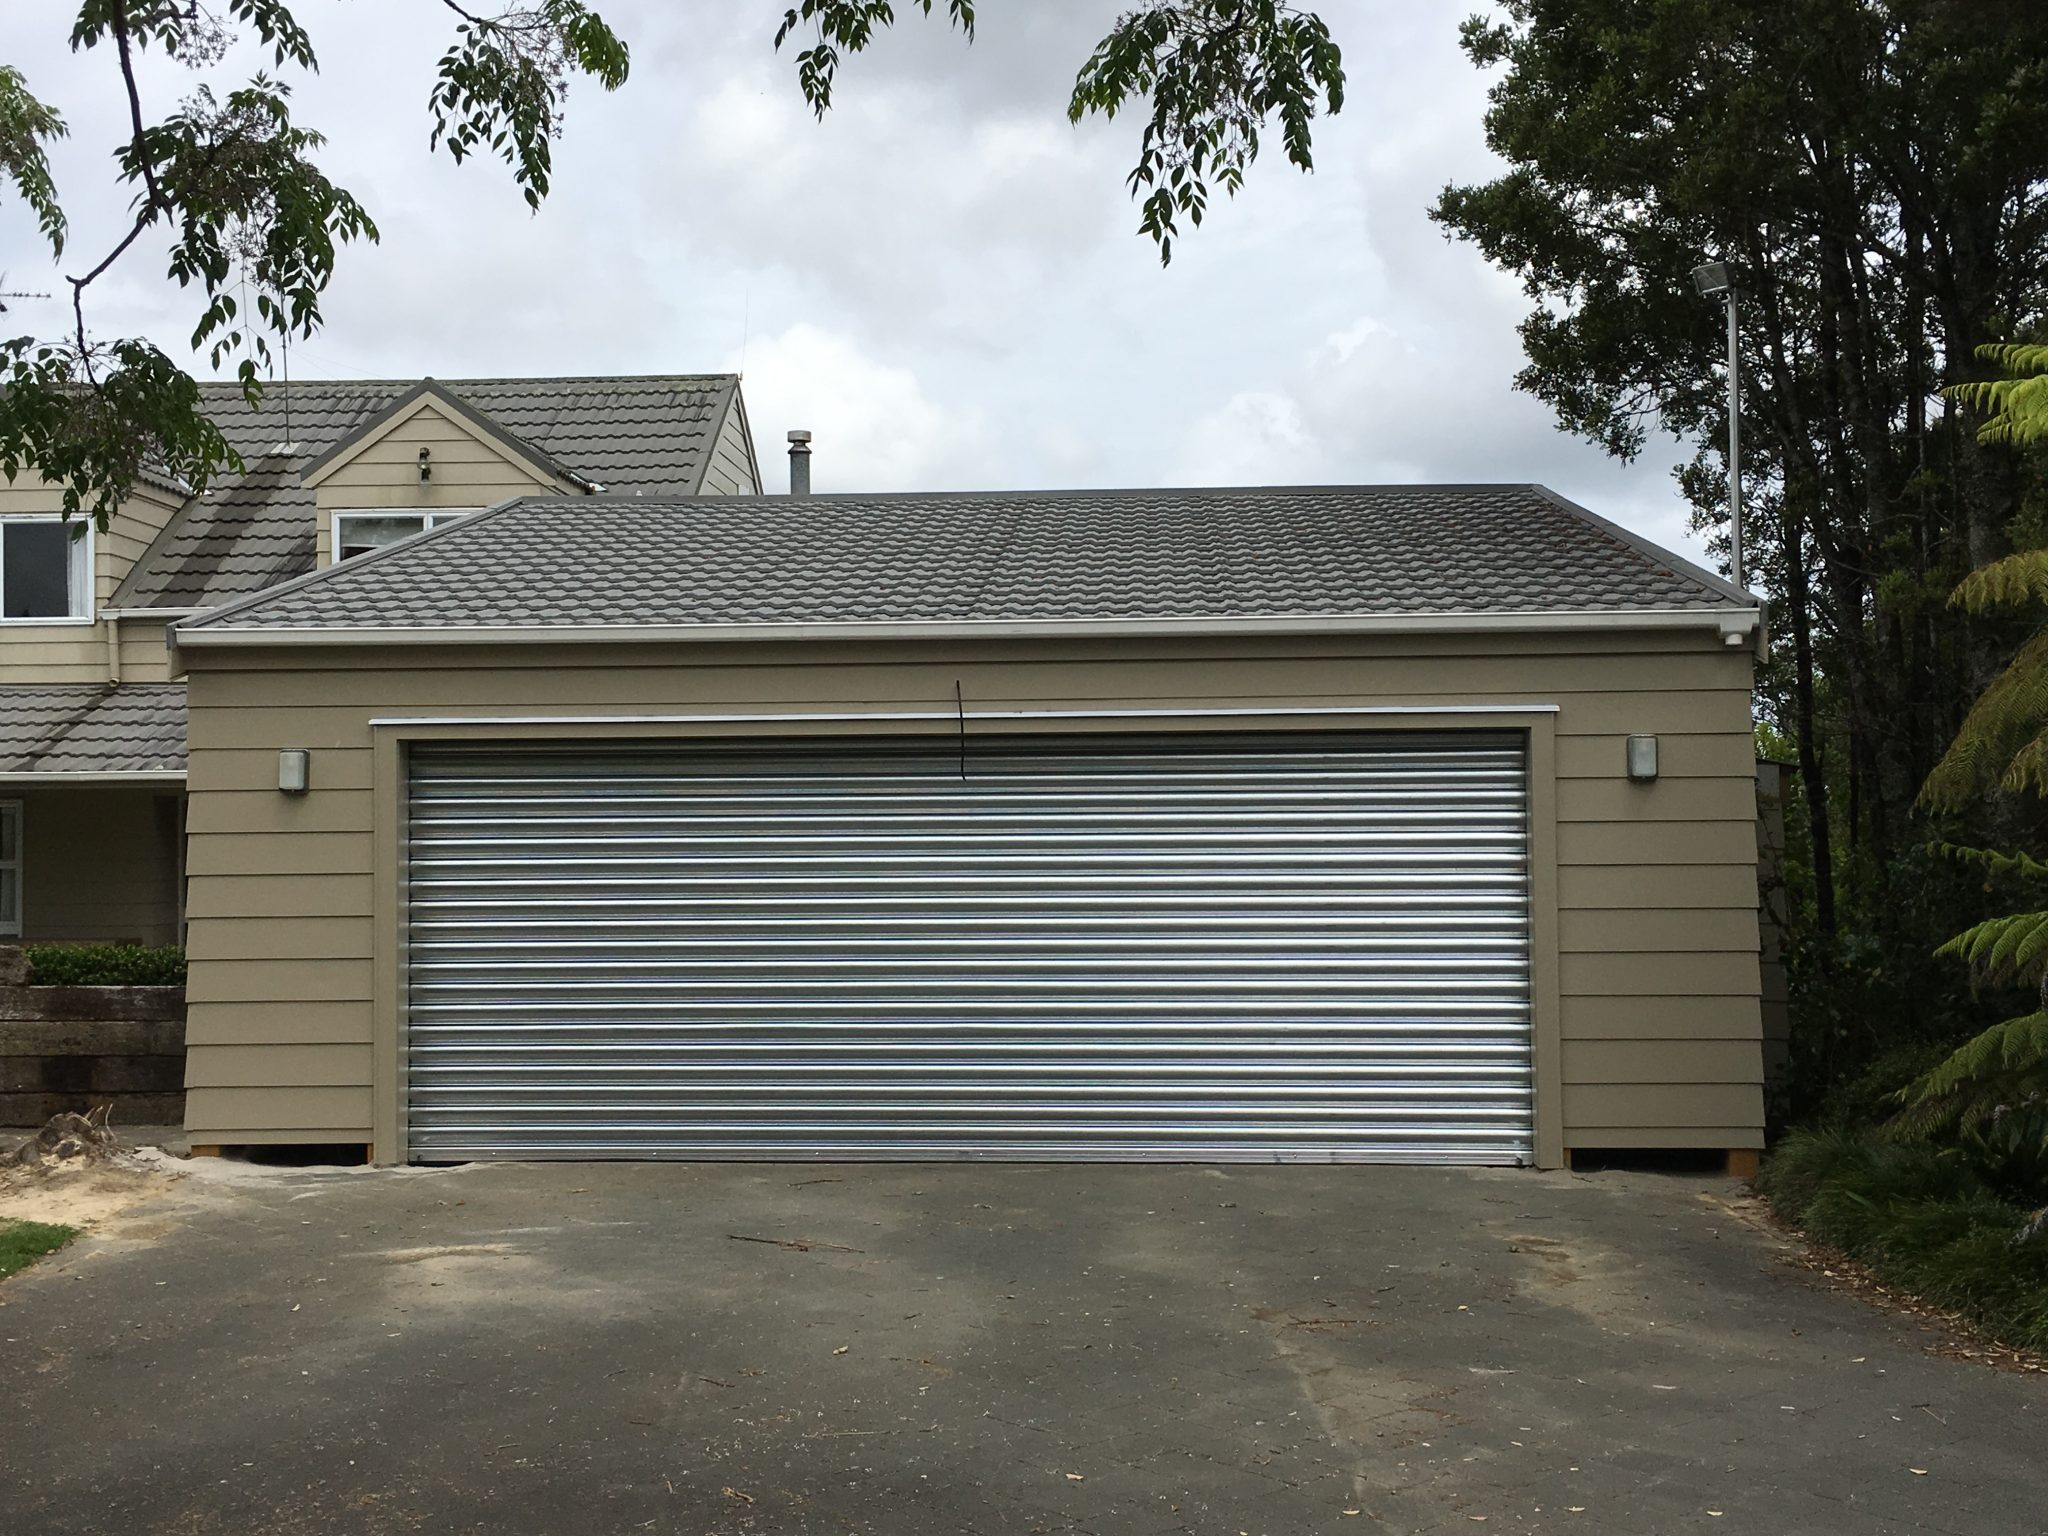 North Shore Garage Extension